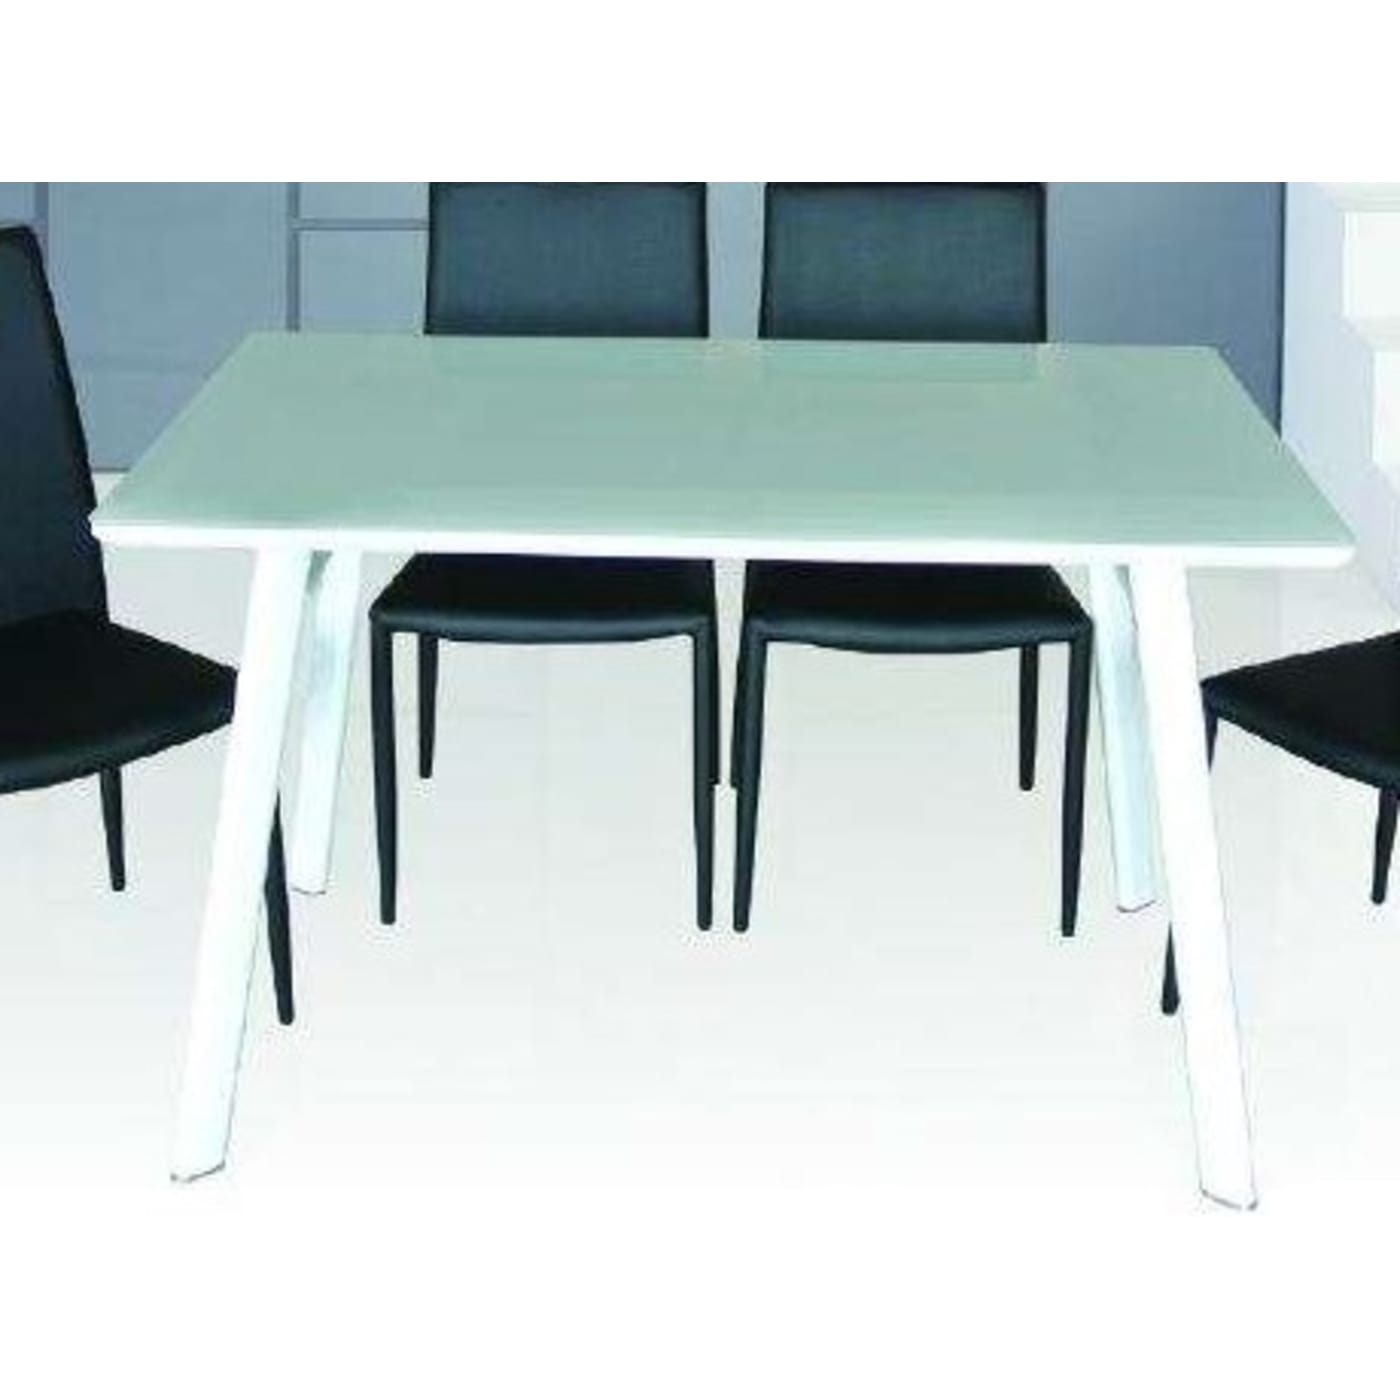 J&M White High Gloss Dining Table & Reviews - Goedekers.com